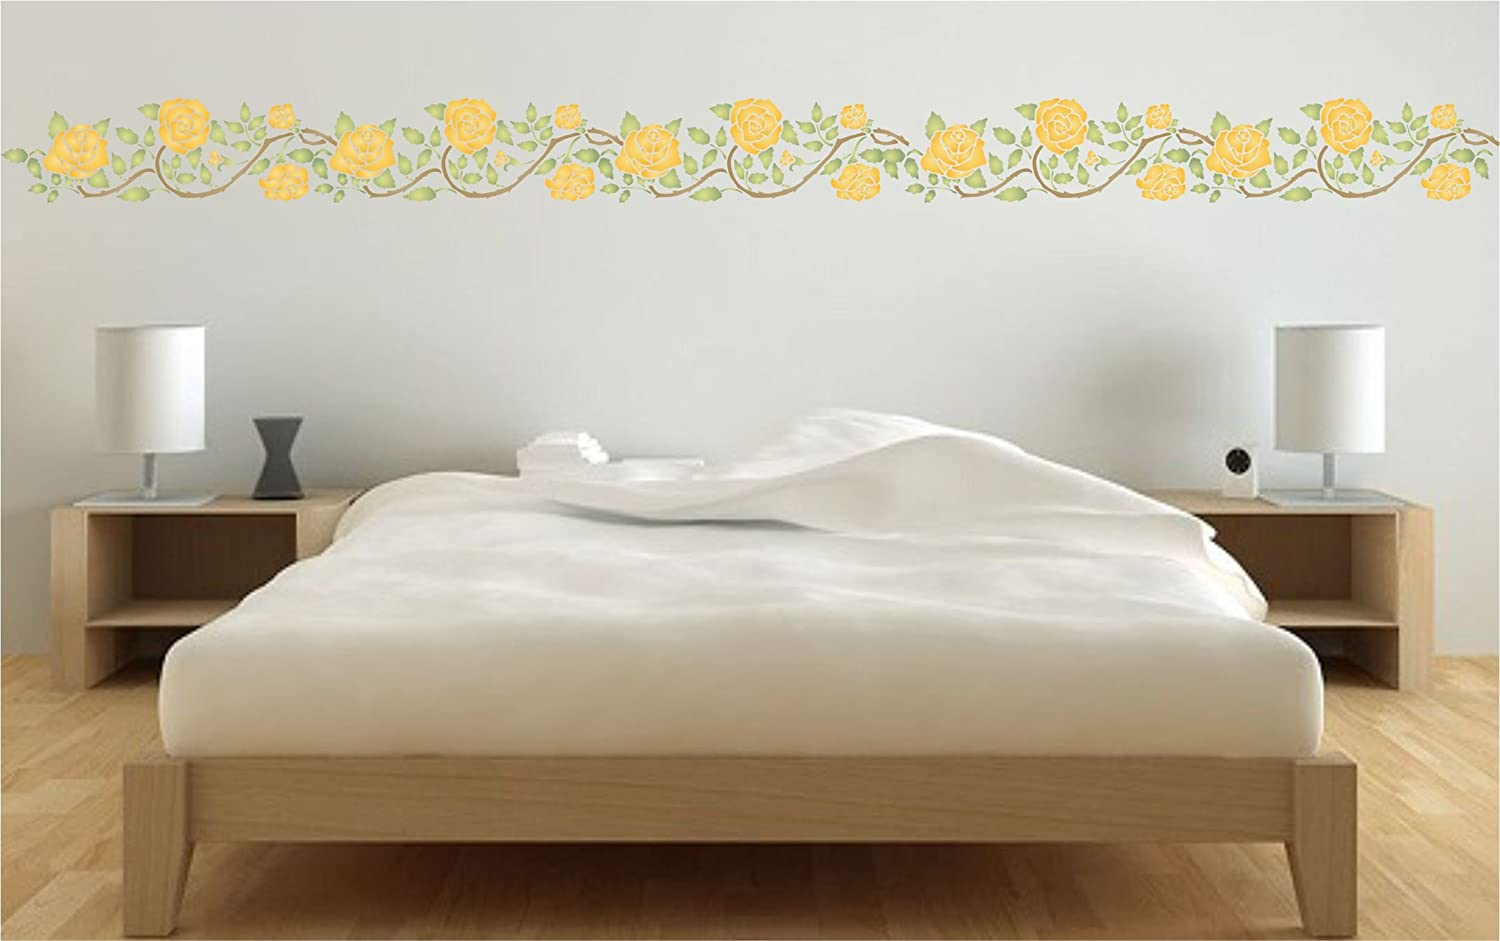 Amazon rose border stencil size 145w x 45h reusable amazon rose border stencil size 145w x 45h reusable wall stencils for painting best quality wall border flower stencil rambling rose use on amipublicfo Gallery